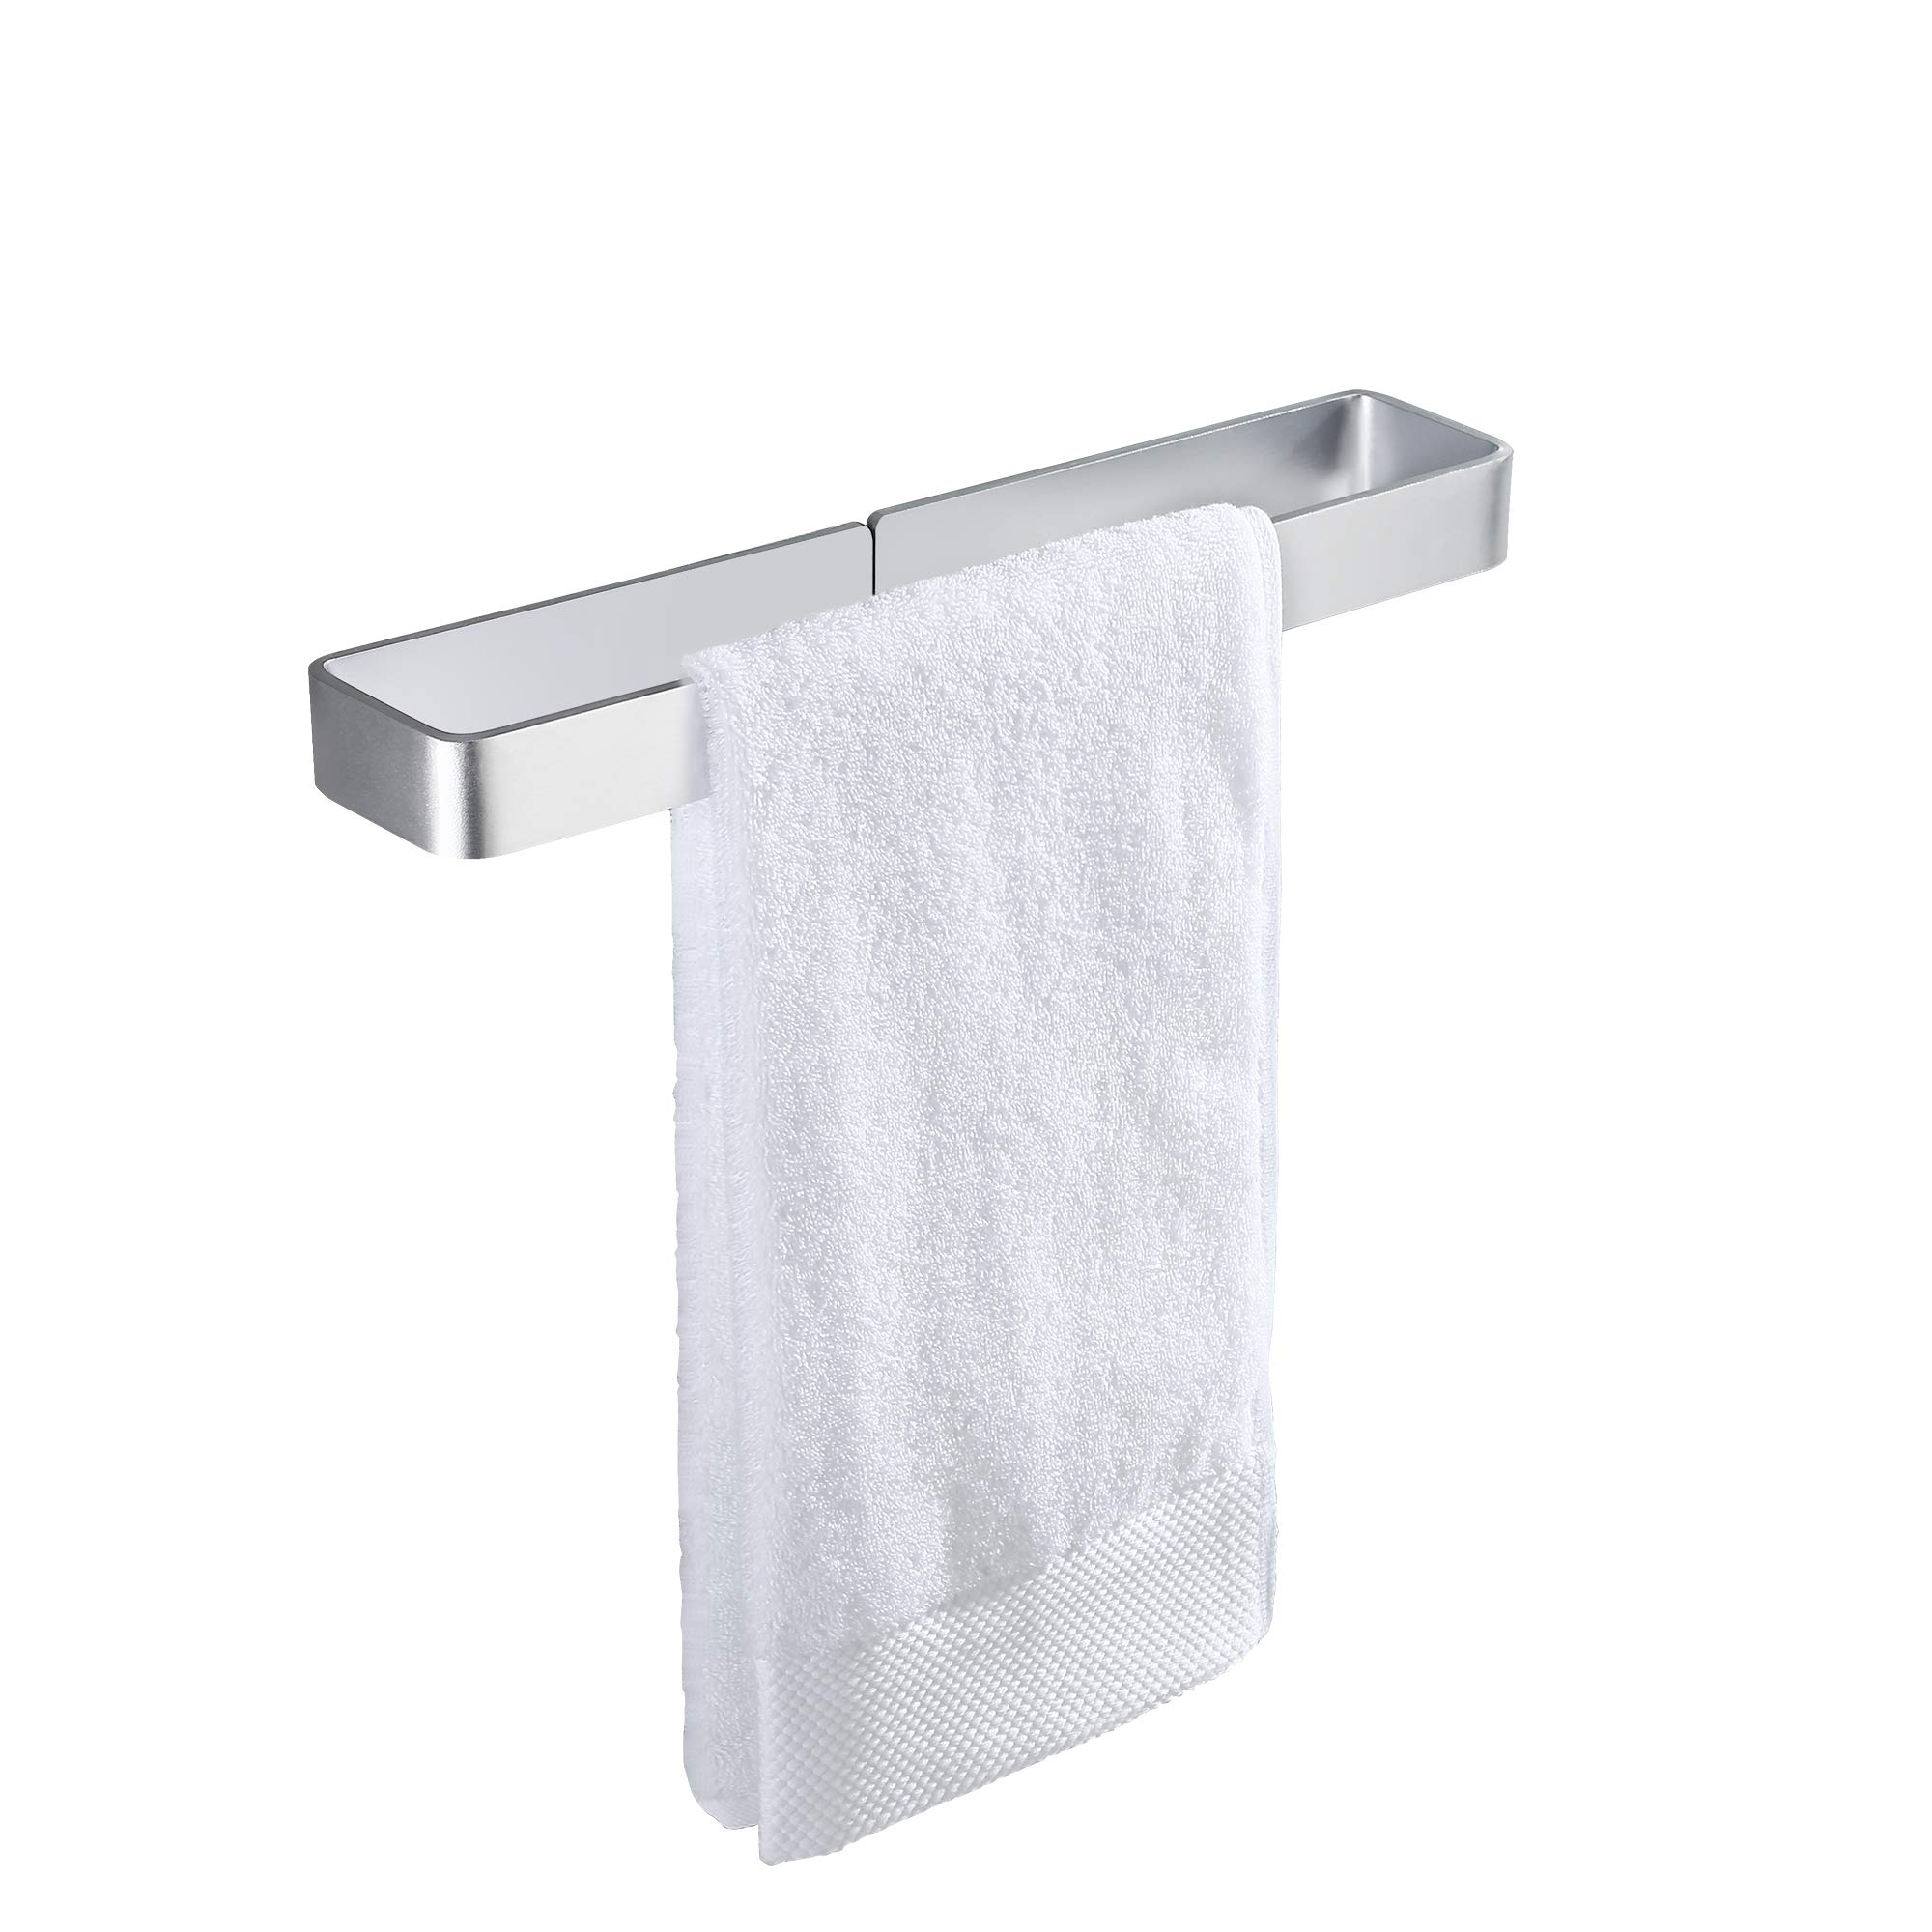 KES Self Adhesive Towel Bar for Bathroom 15.7-Inch Stick on Towel Rack No Drill Wall Mounted Aluminum Silver, BTH402S40